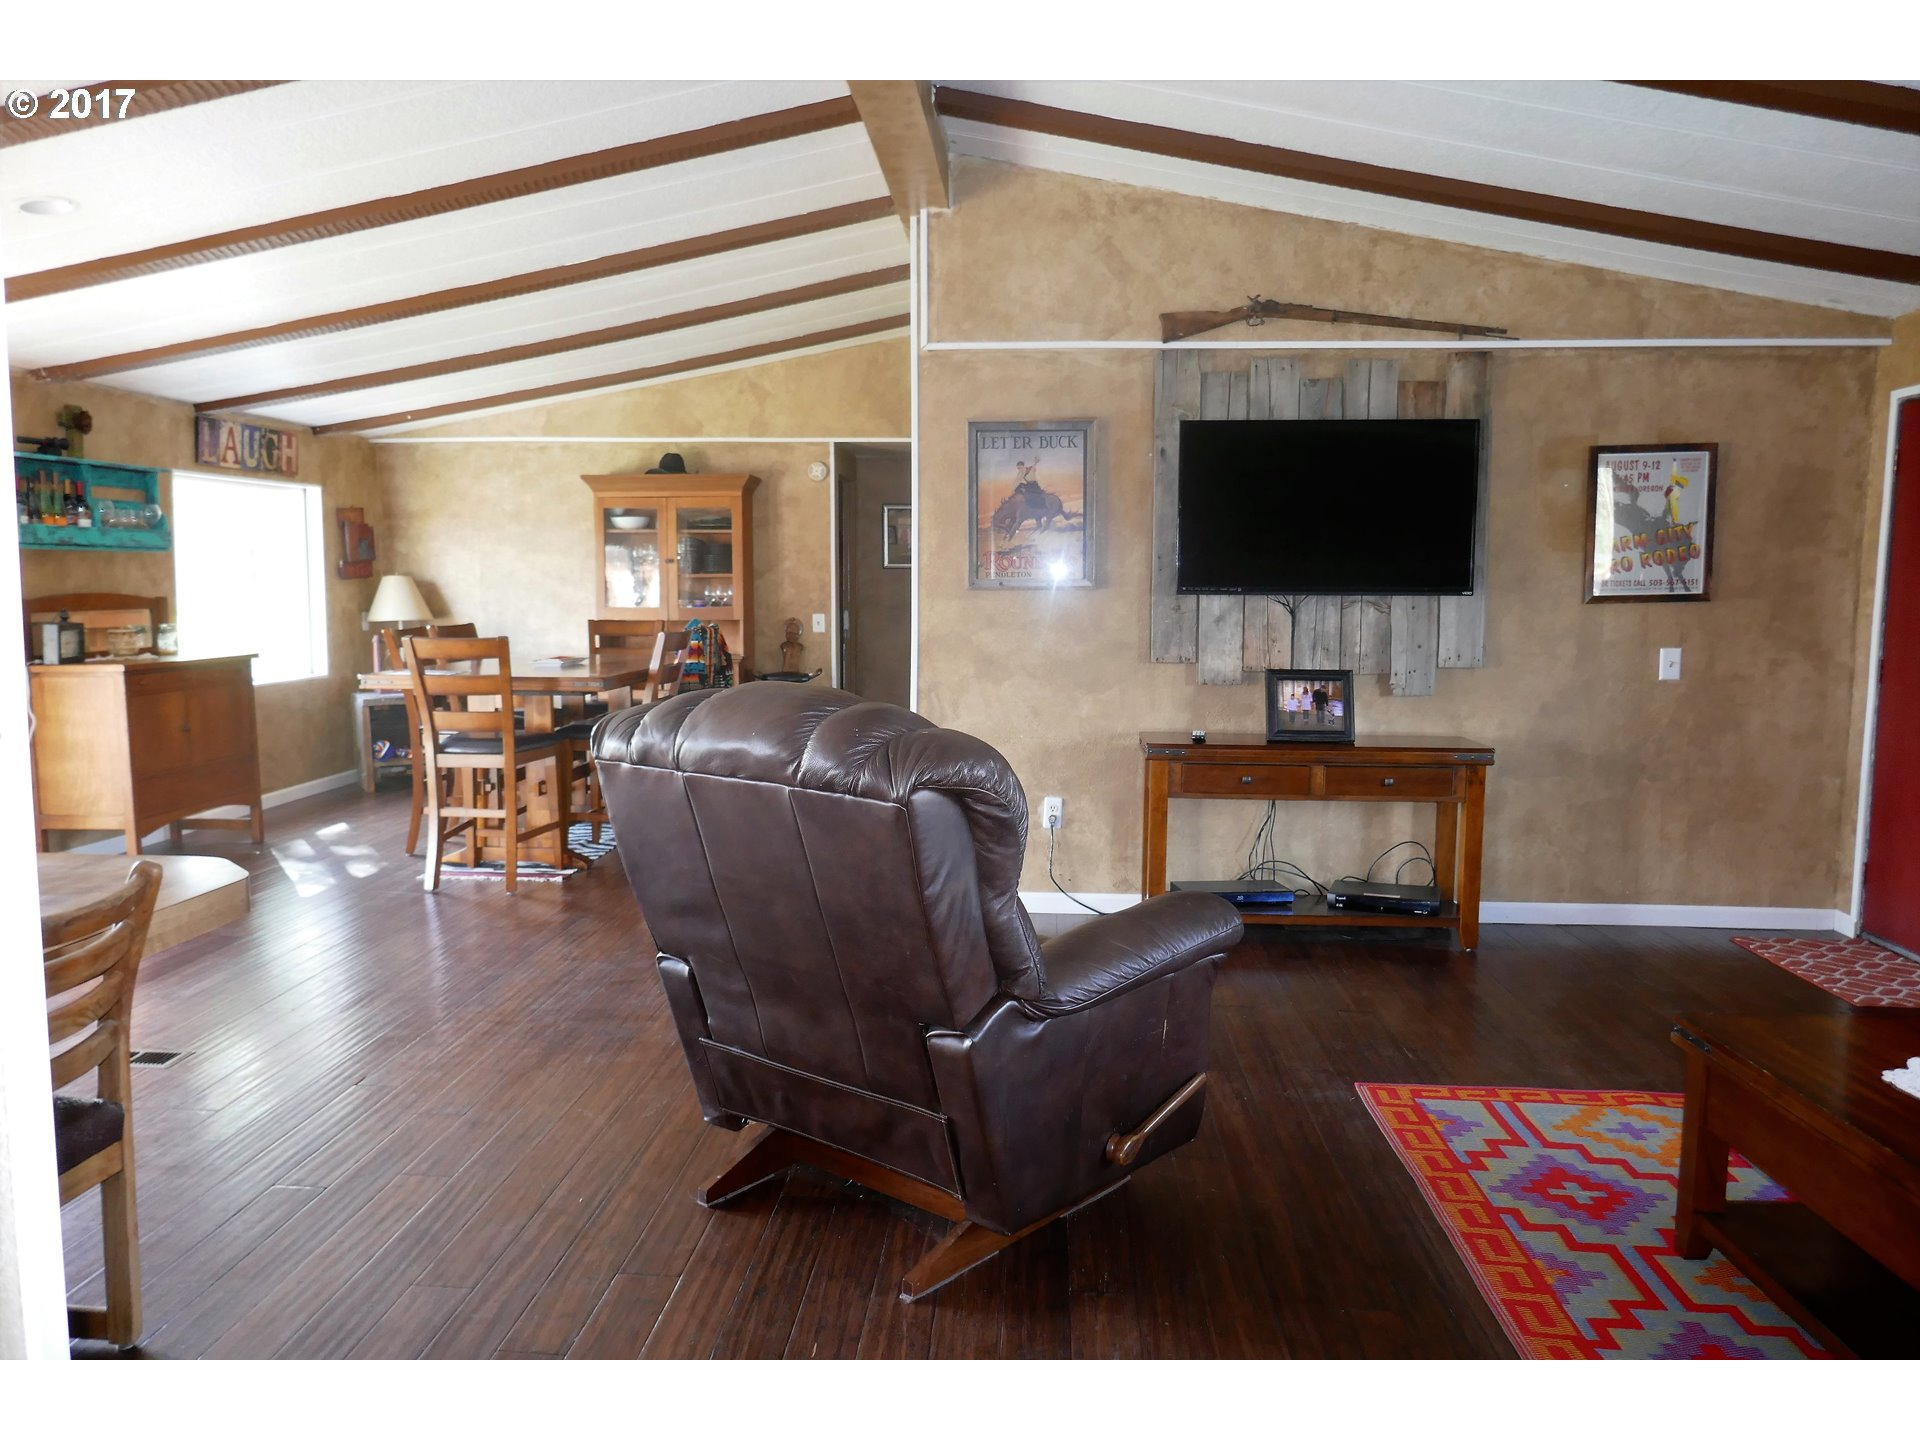 1505 sq. ft 4 bedrooms 2 bathrooms  House For Sale,Pendleton, OR